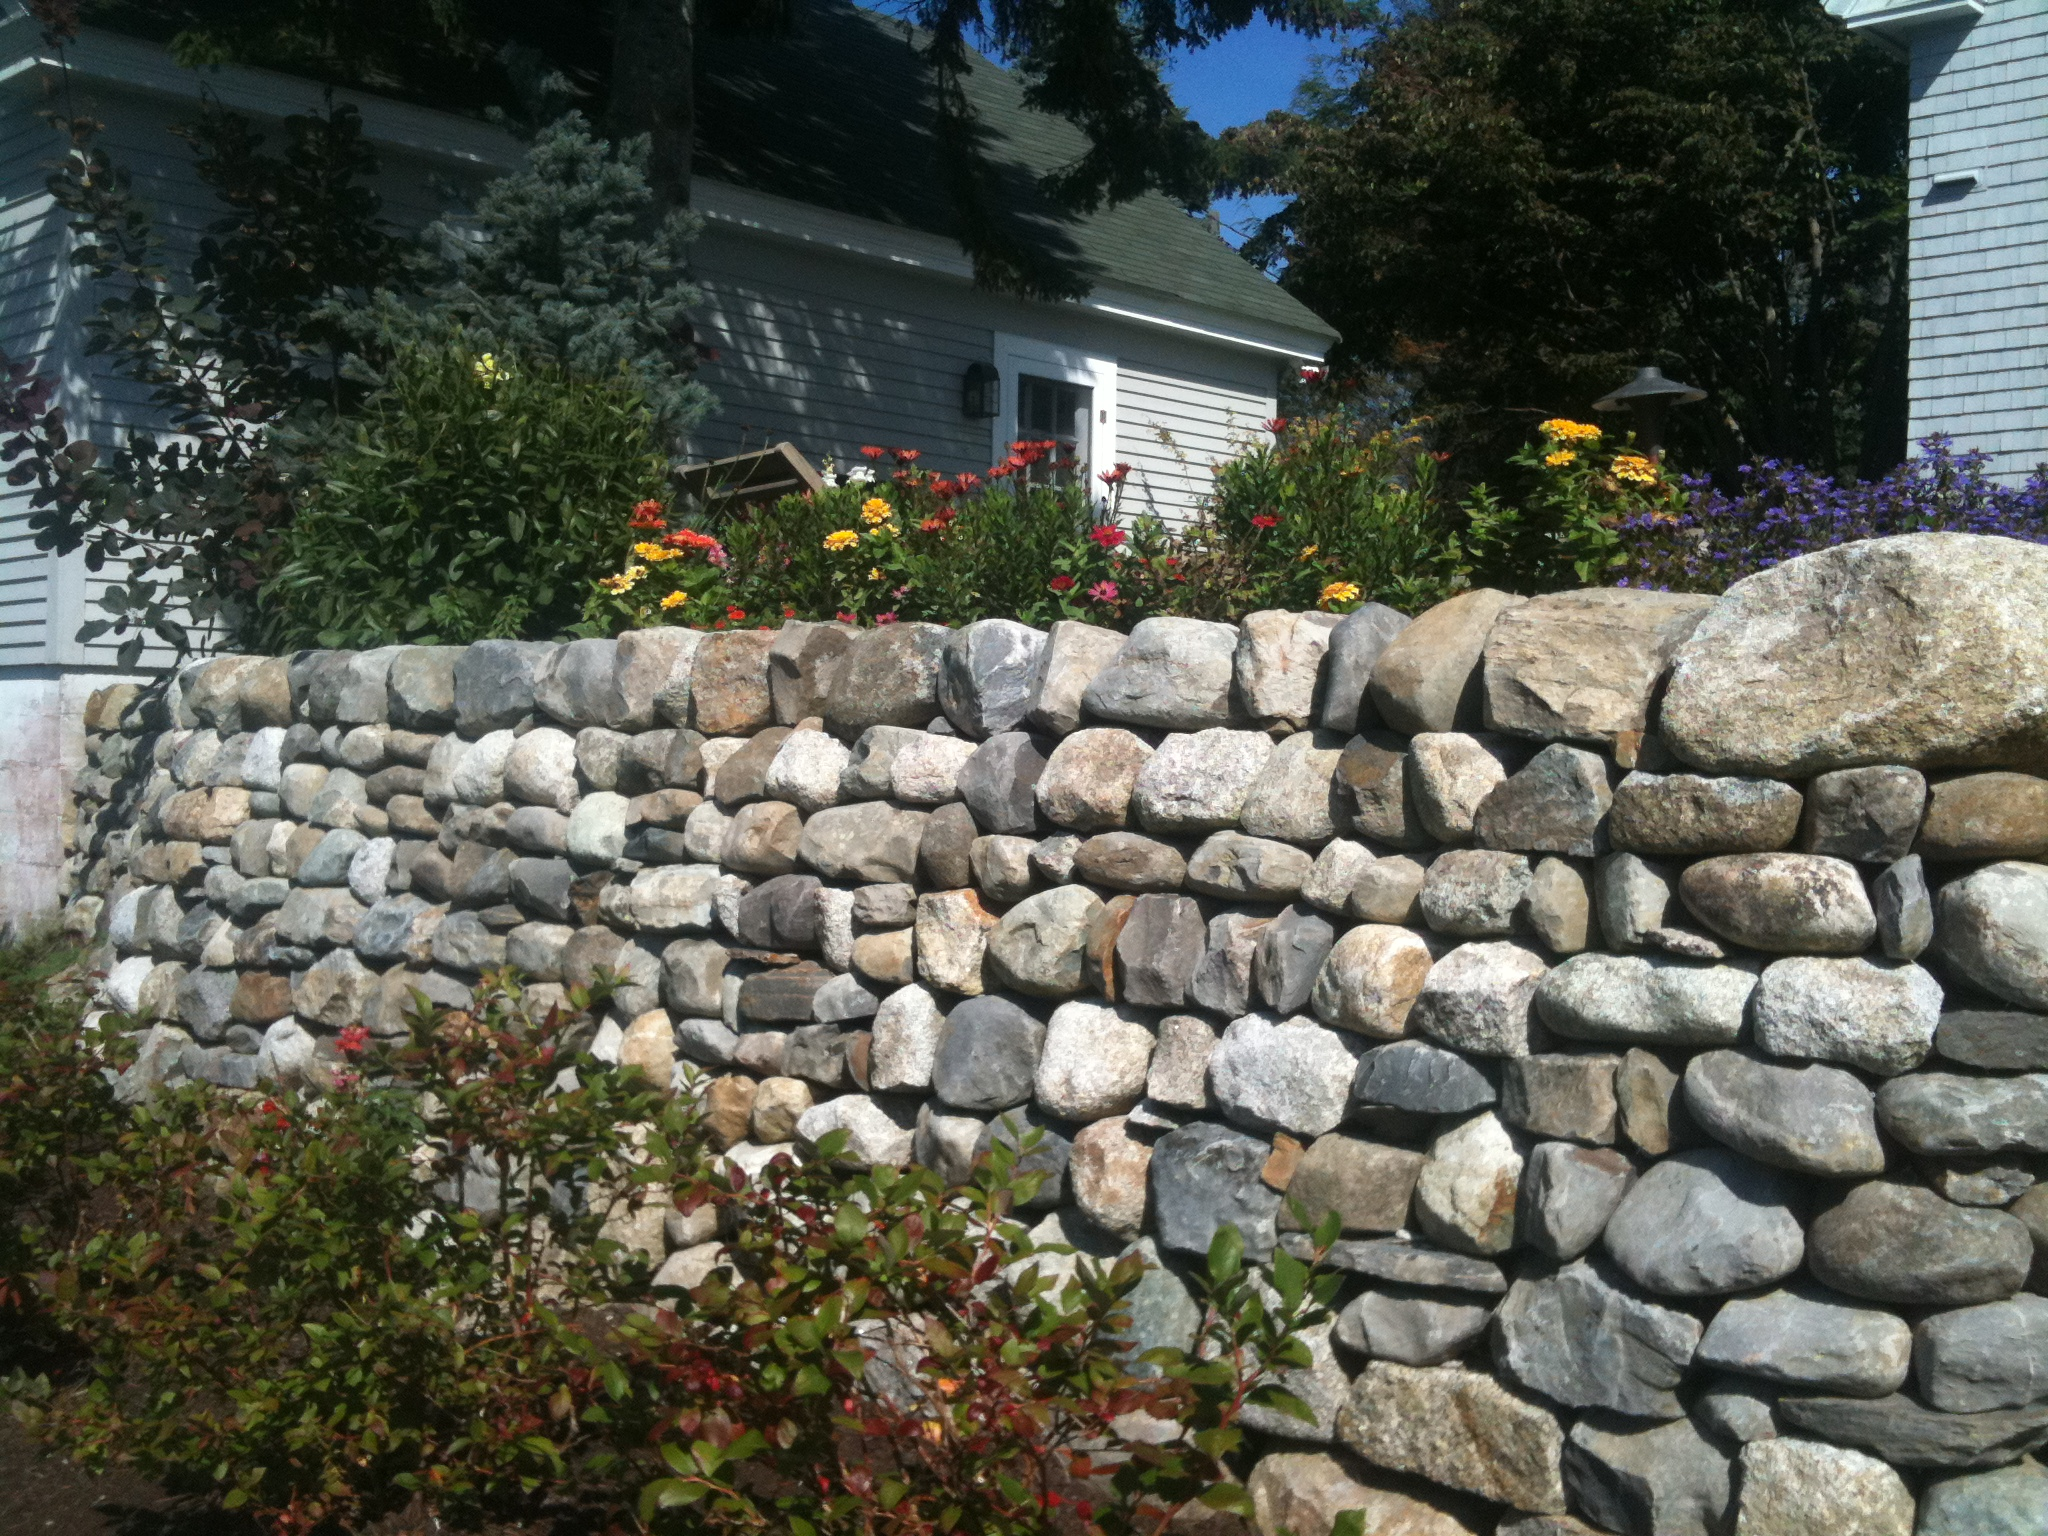 Landscapes can feature drystone walls for privacy & beauty.